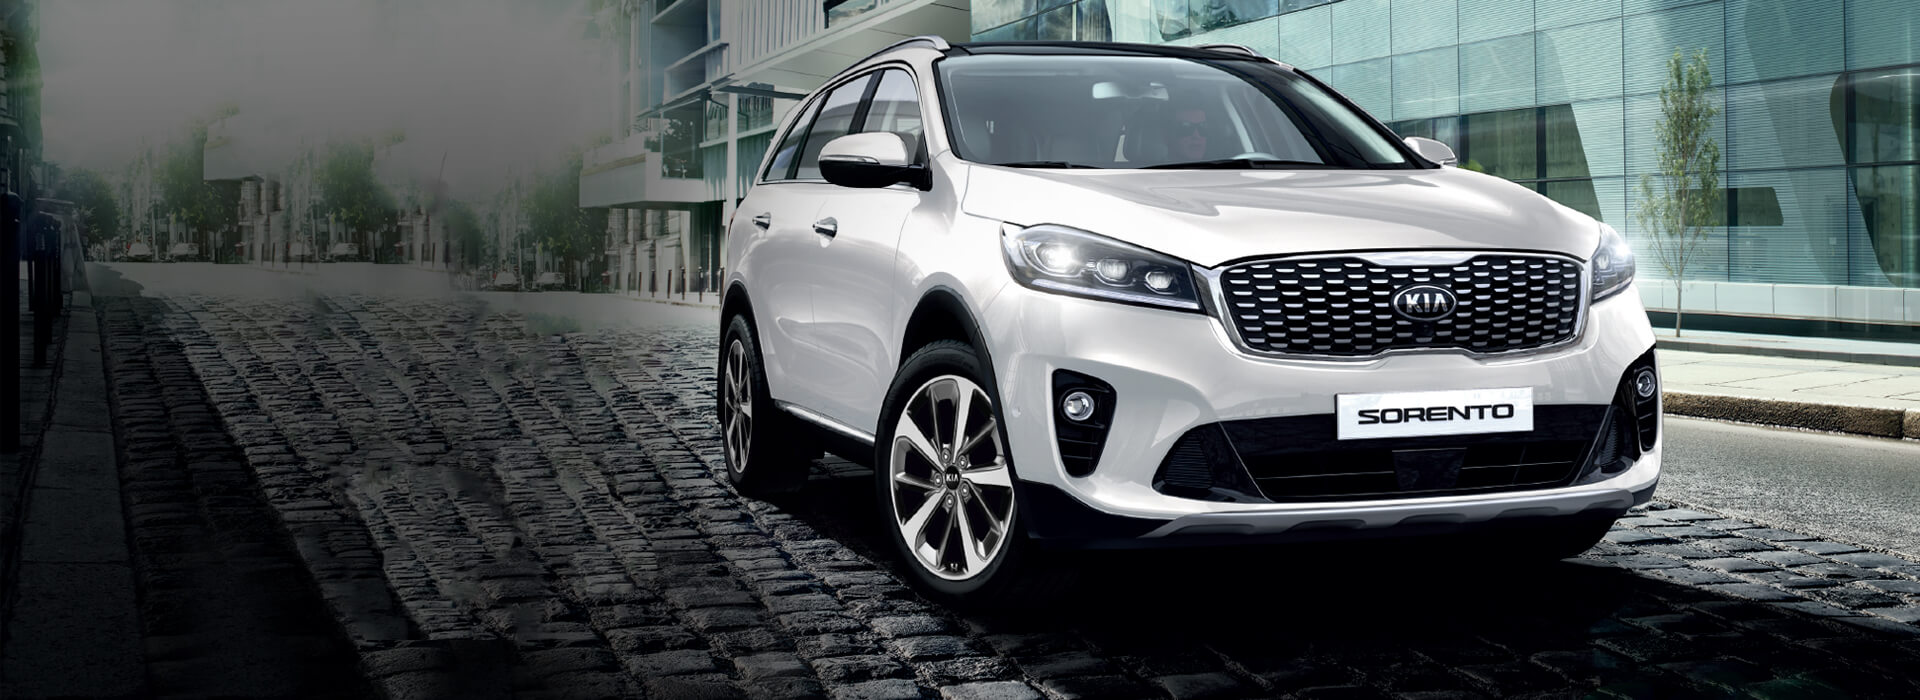 Kia Sorento wins Best Large SUV at Women's World Car of the Year video-banner